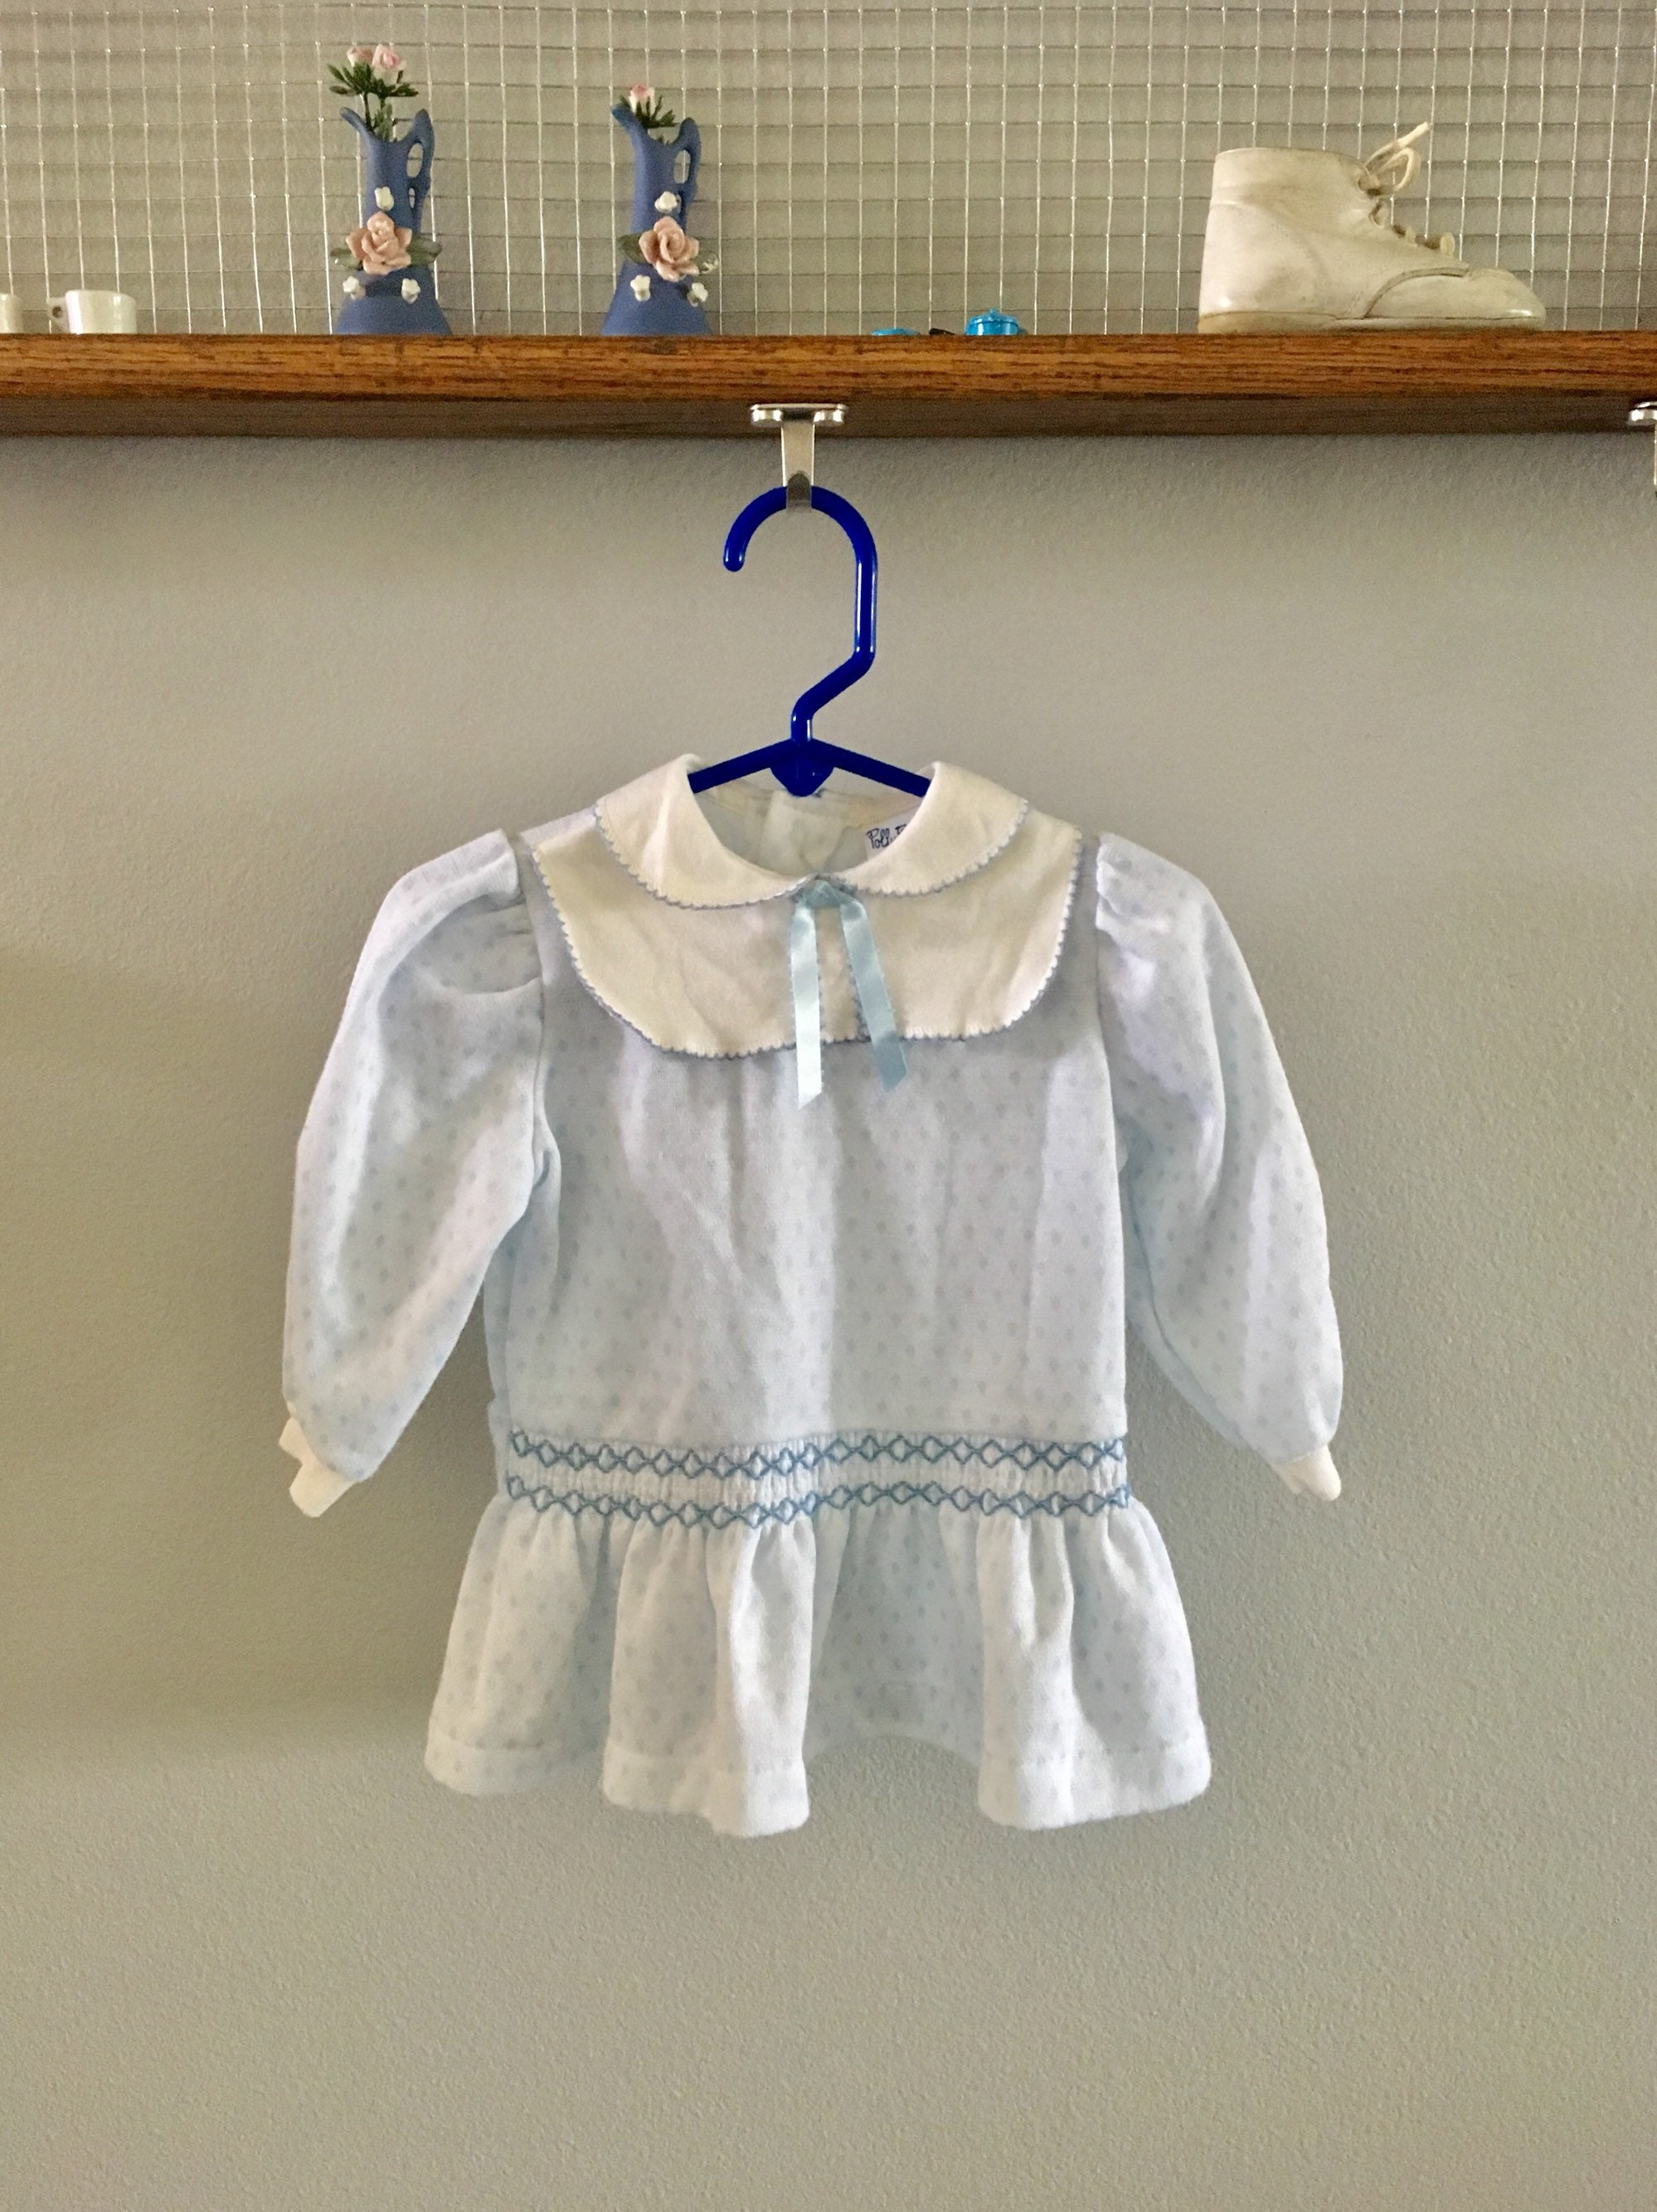 0148ac3298b6 Vintage Polly Flinders baby dress in blue and white knit with smocking,  peter pan collar yoke and ribbon from the 1980's, Size 24 Months